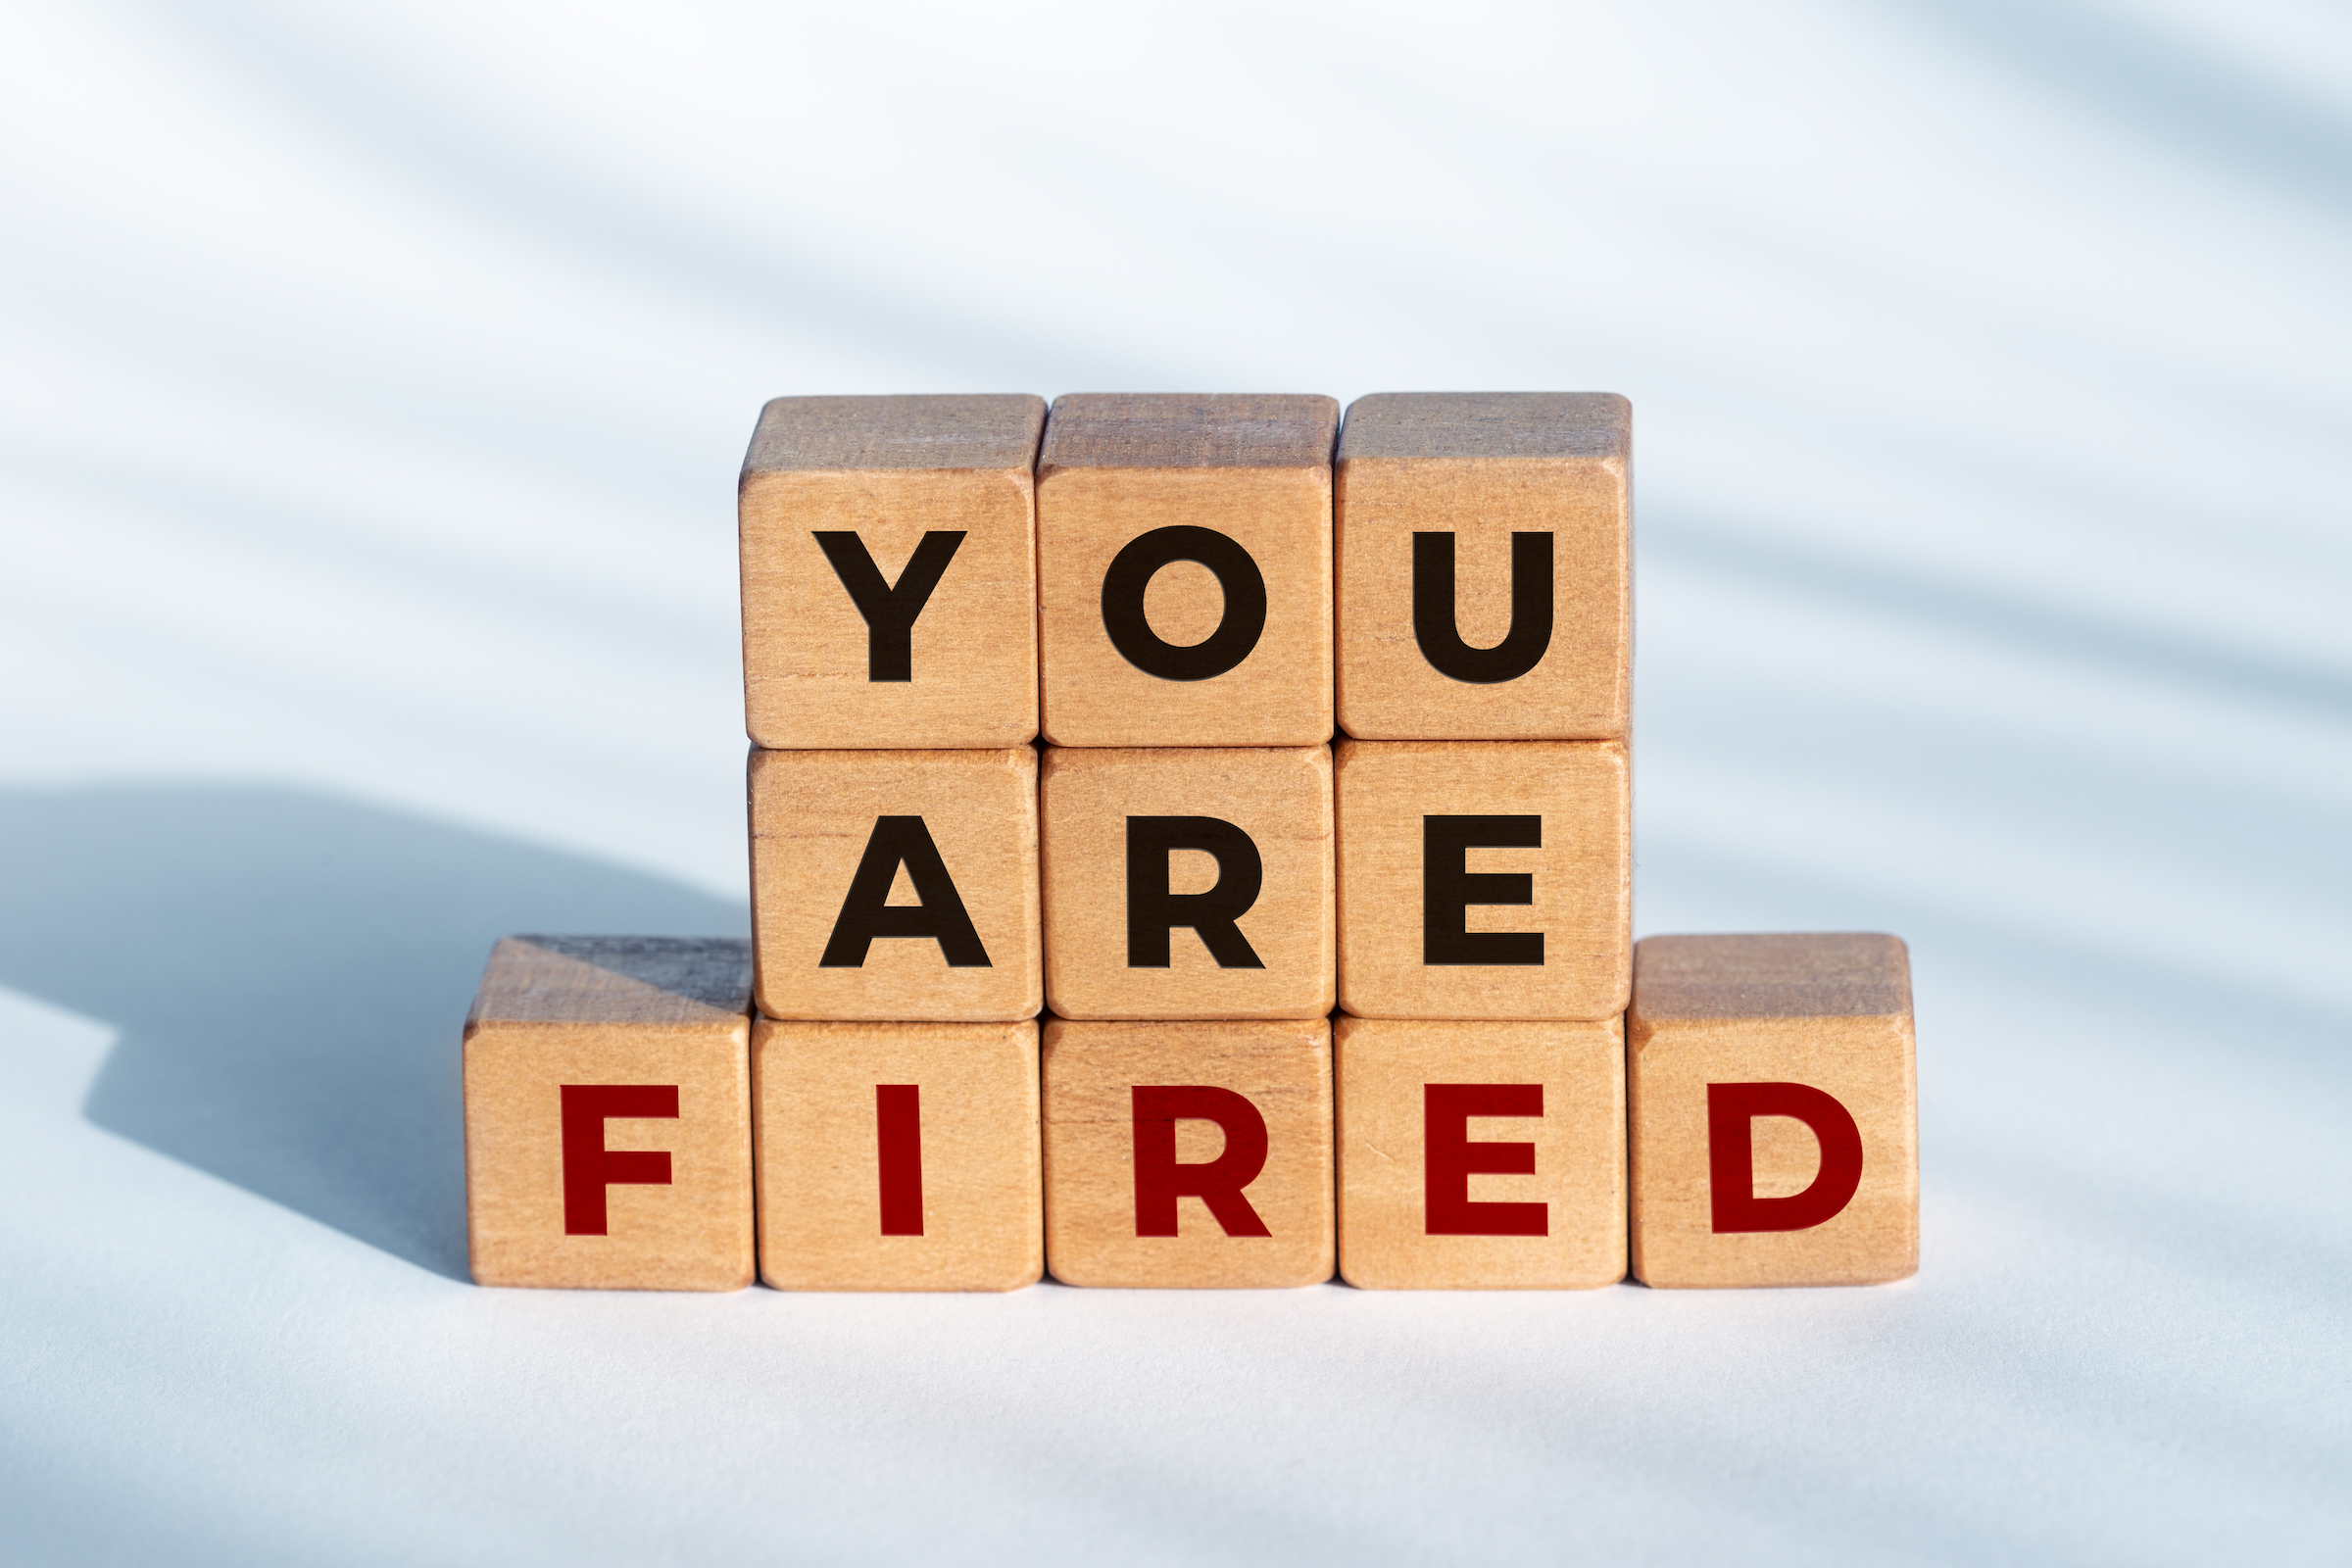 you are fired phrase on wooden blocks 93WTNDY